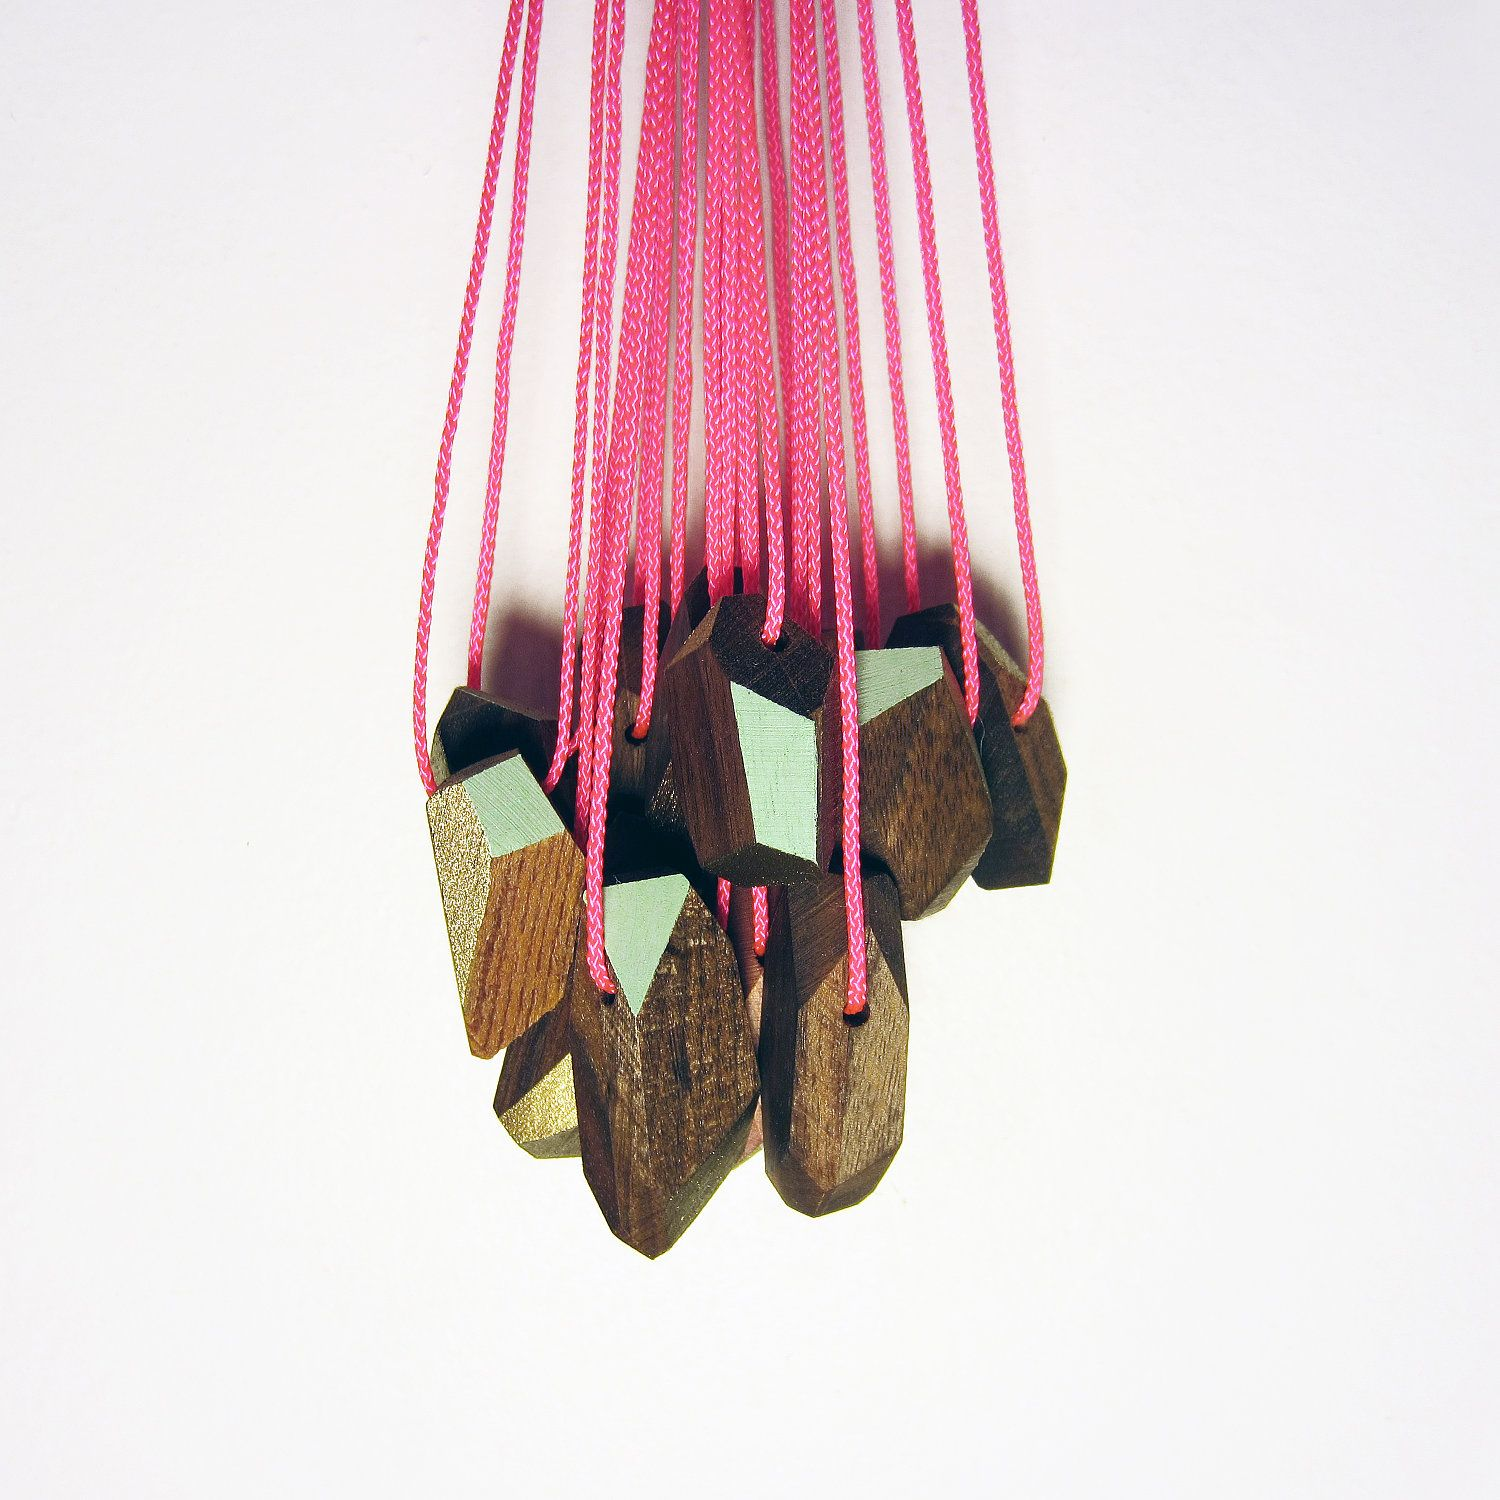 hand painted geometric walnut pendant necklaces by FIGUREframe.